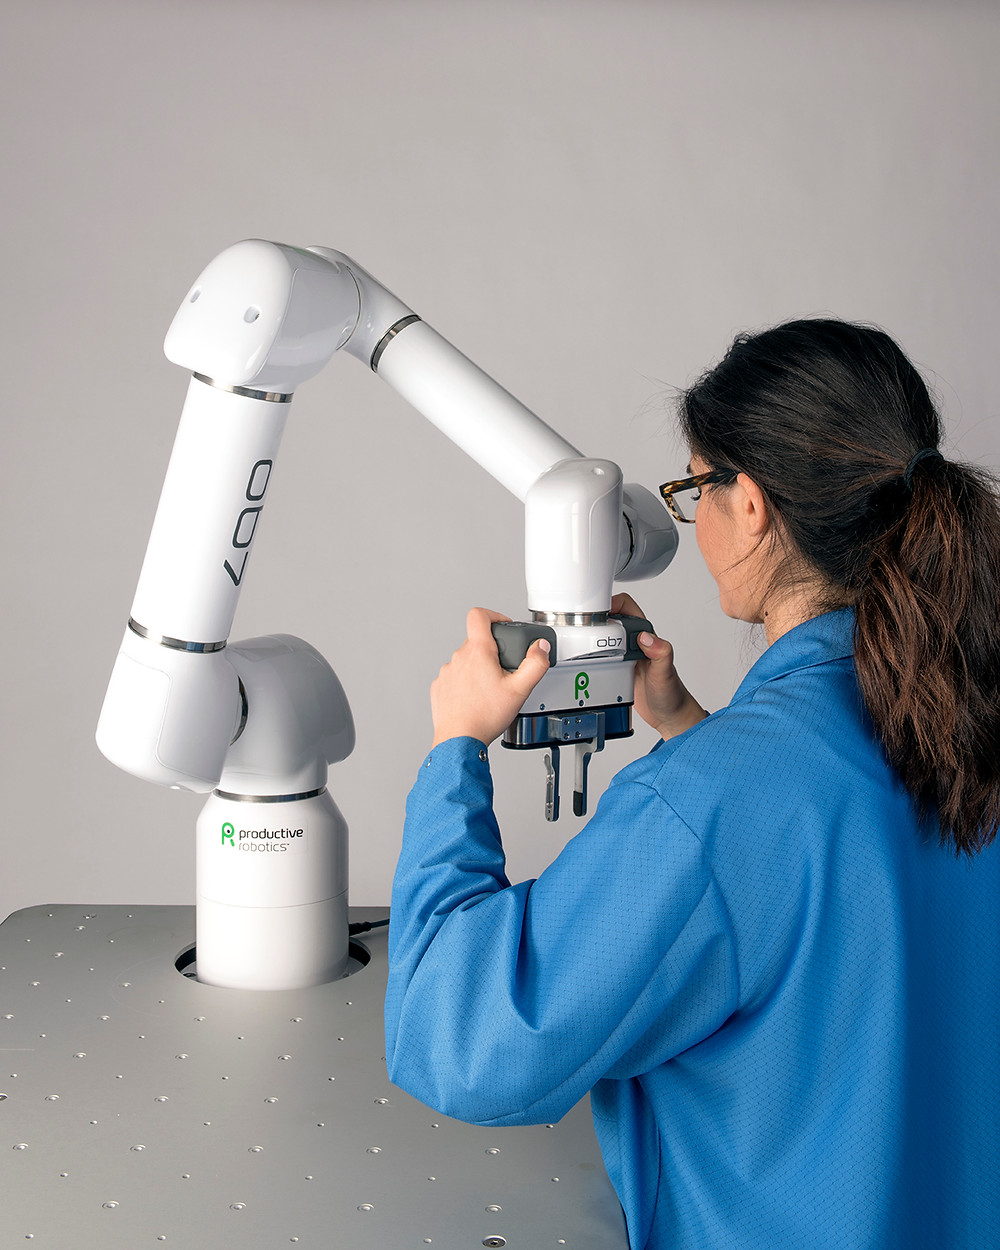 No Programming Interface for Cobot Teaching